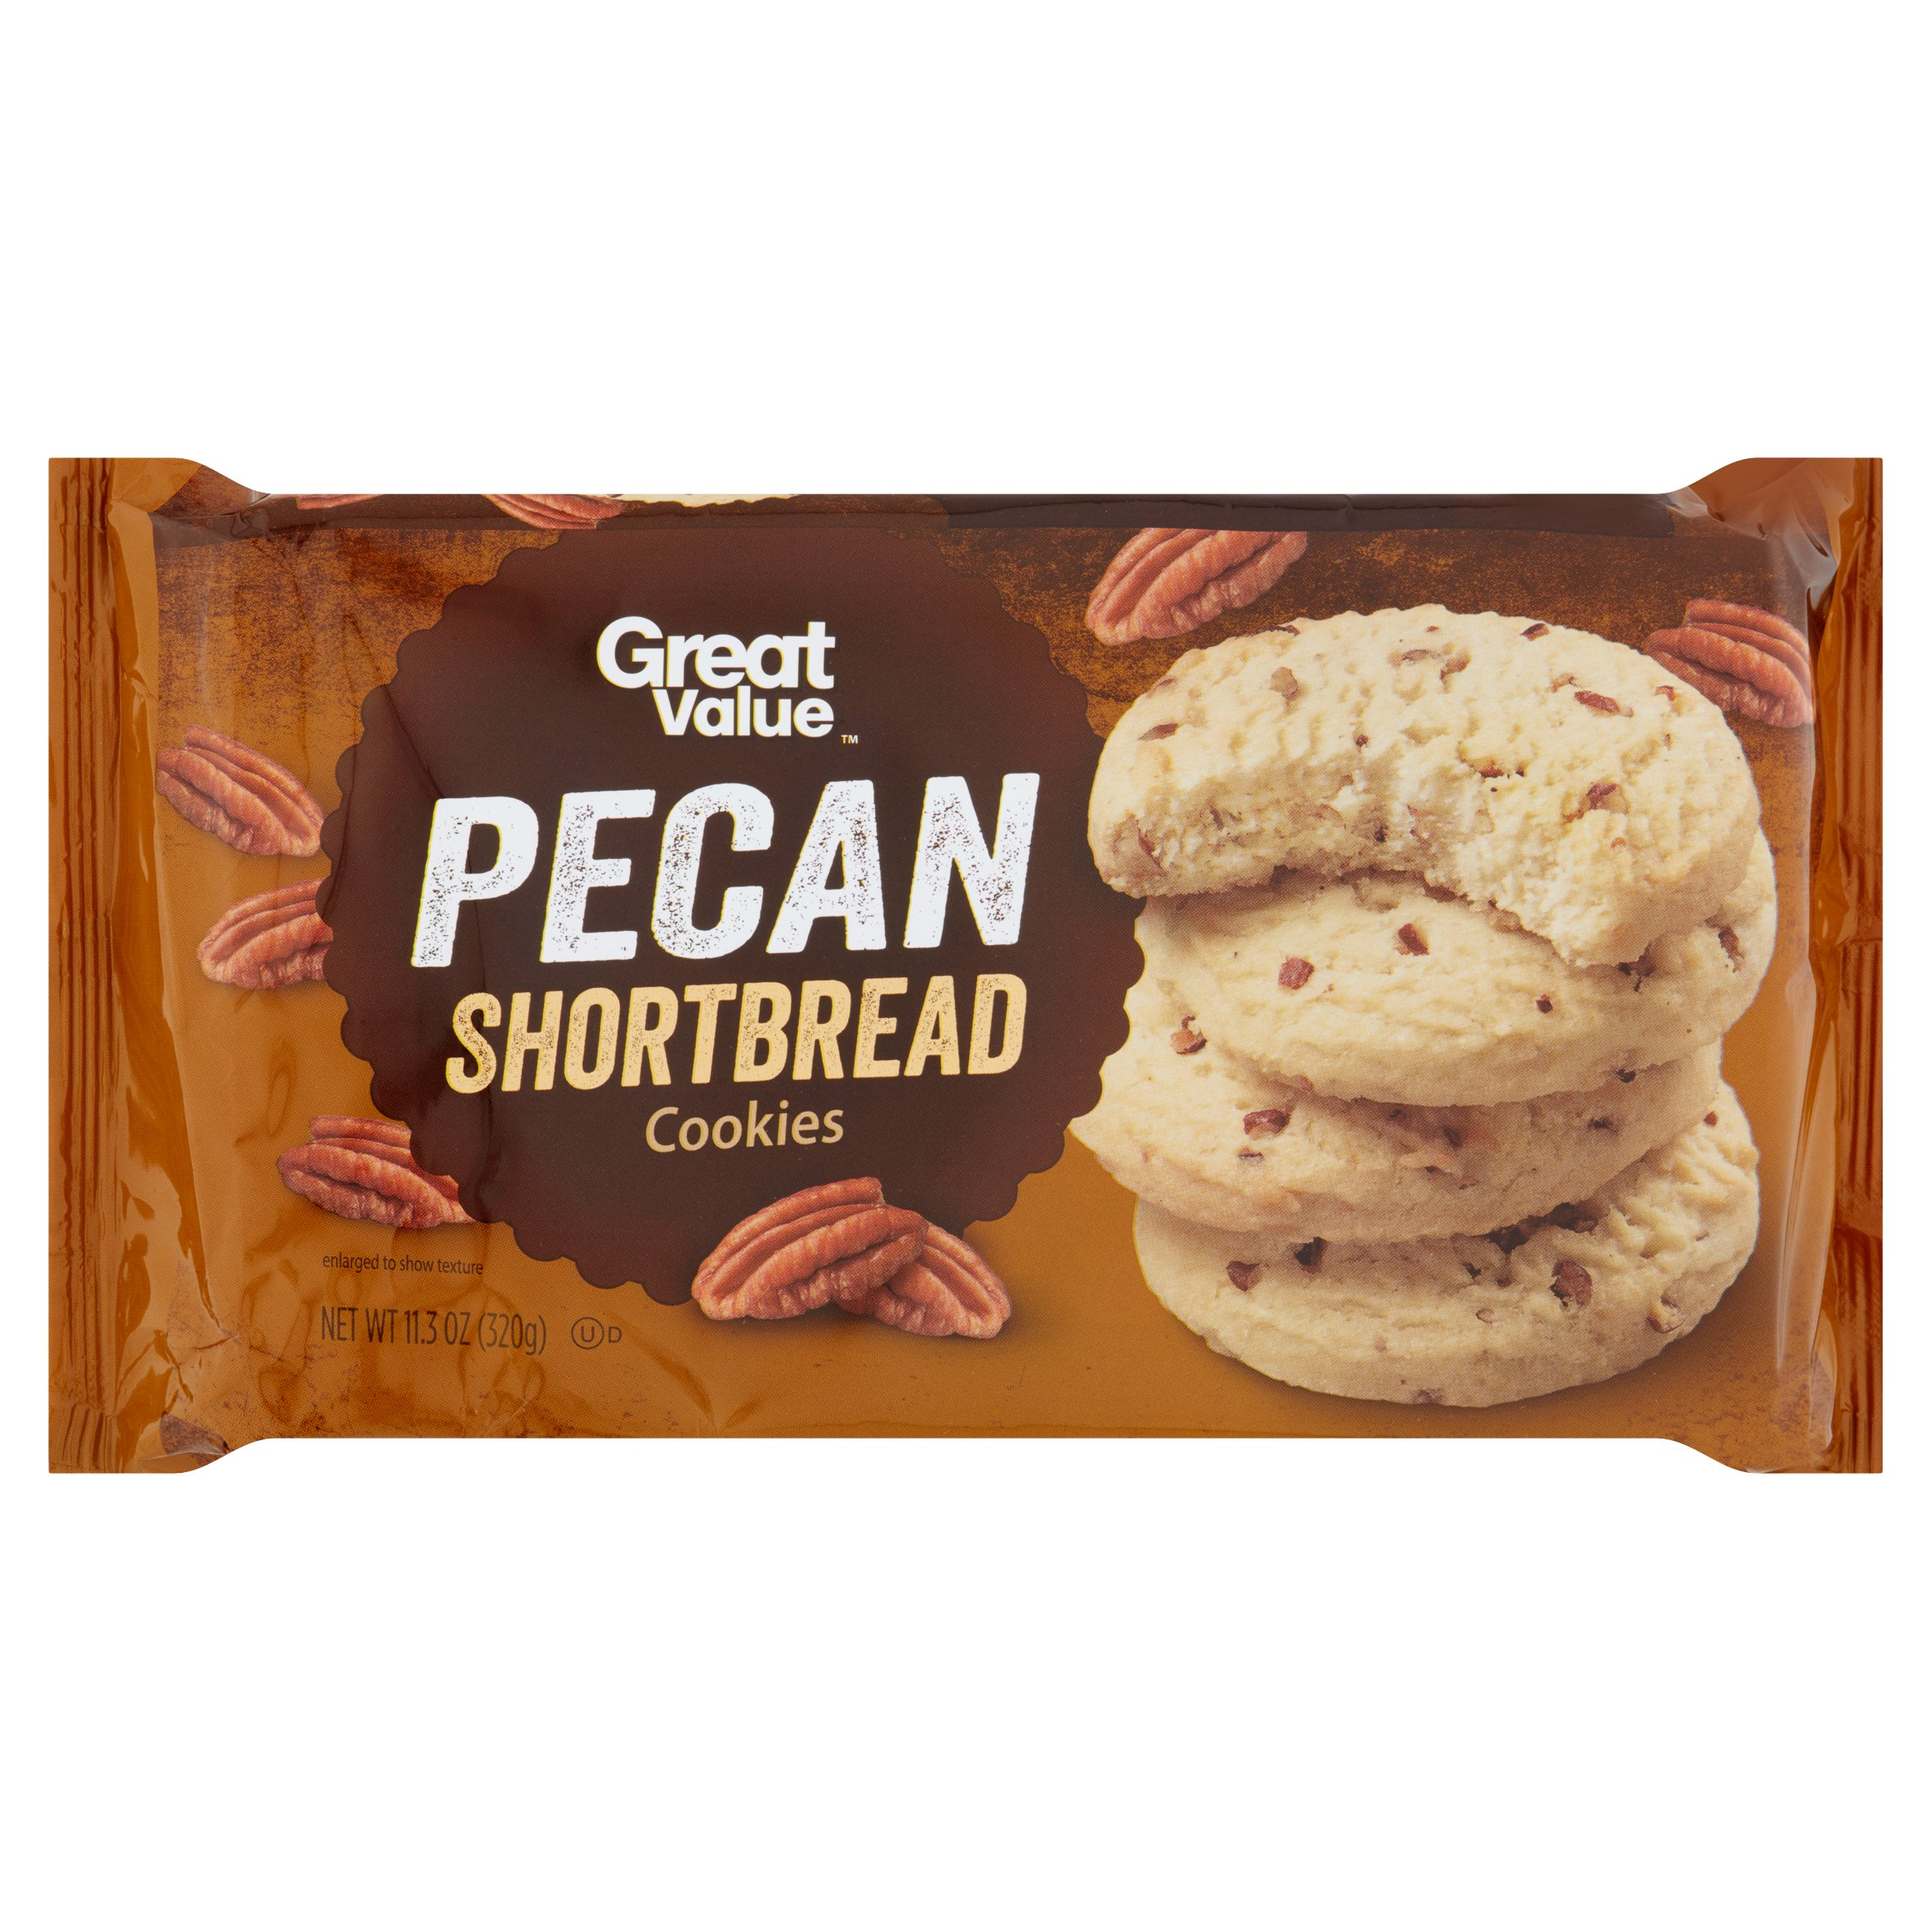 Great Value Pecan Shortbread Cookies, 11.3 oz